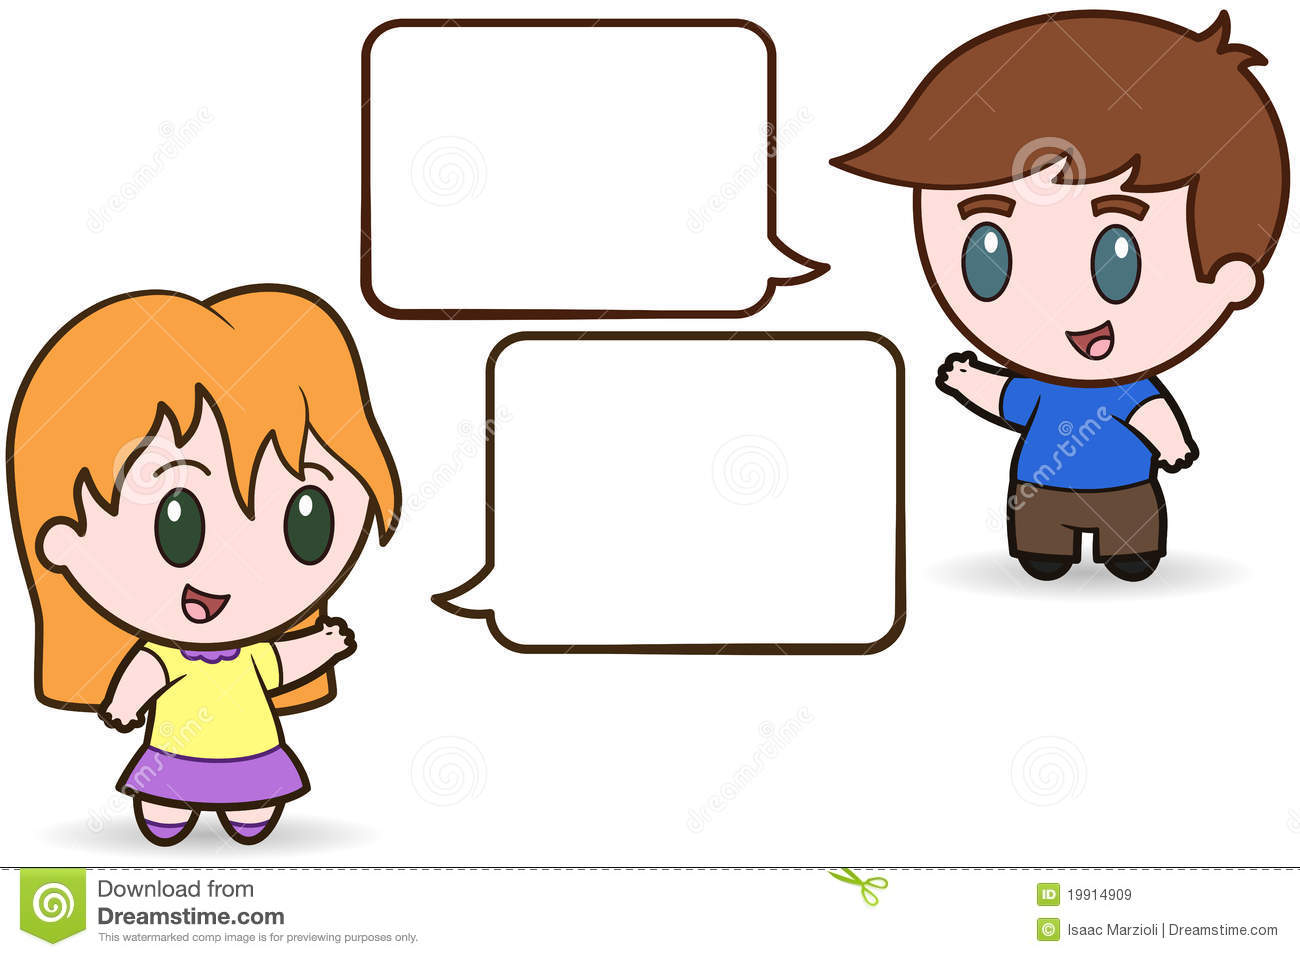 image transparent download To each other station. Clipart kids talking